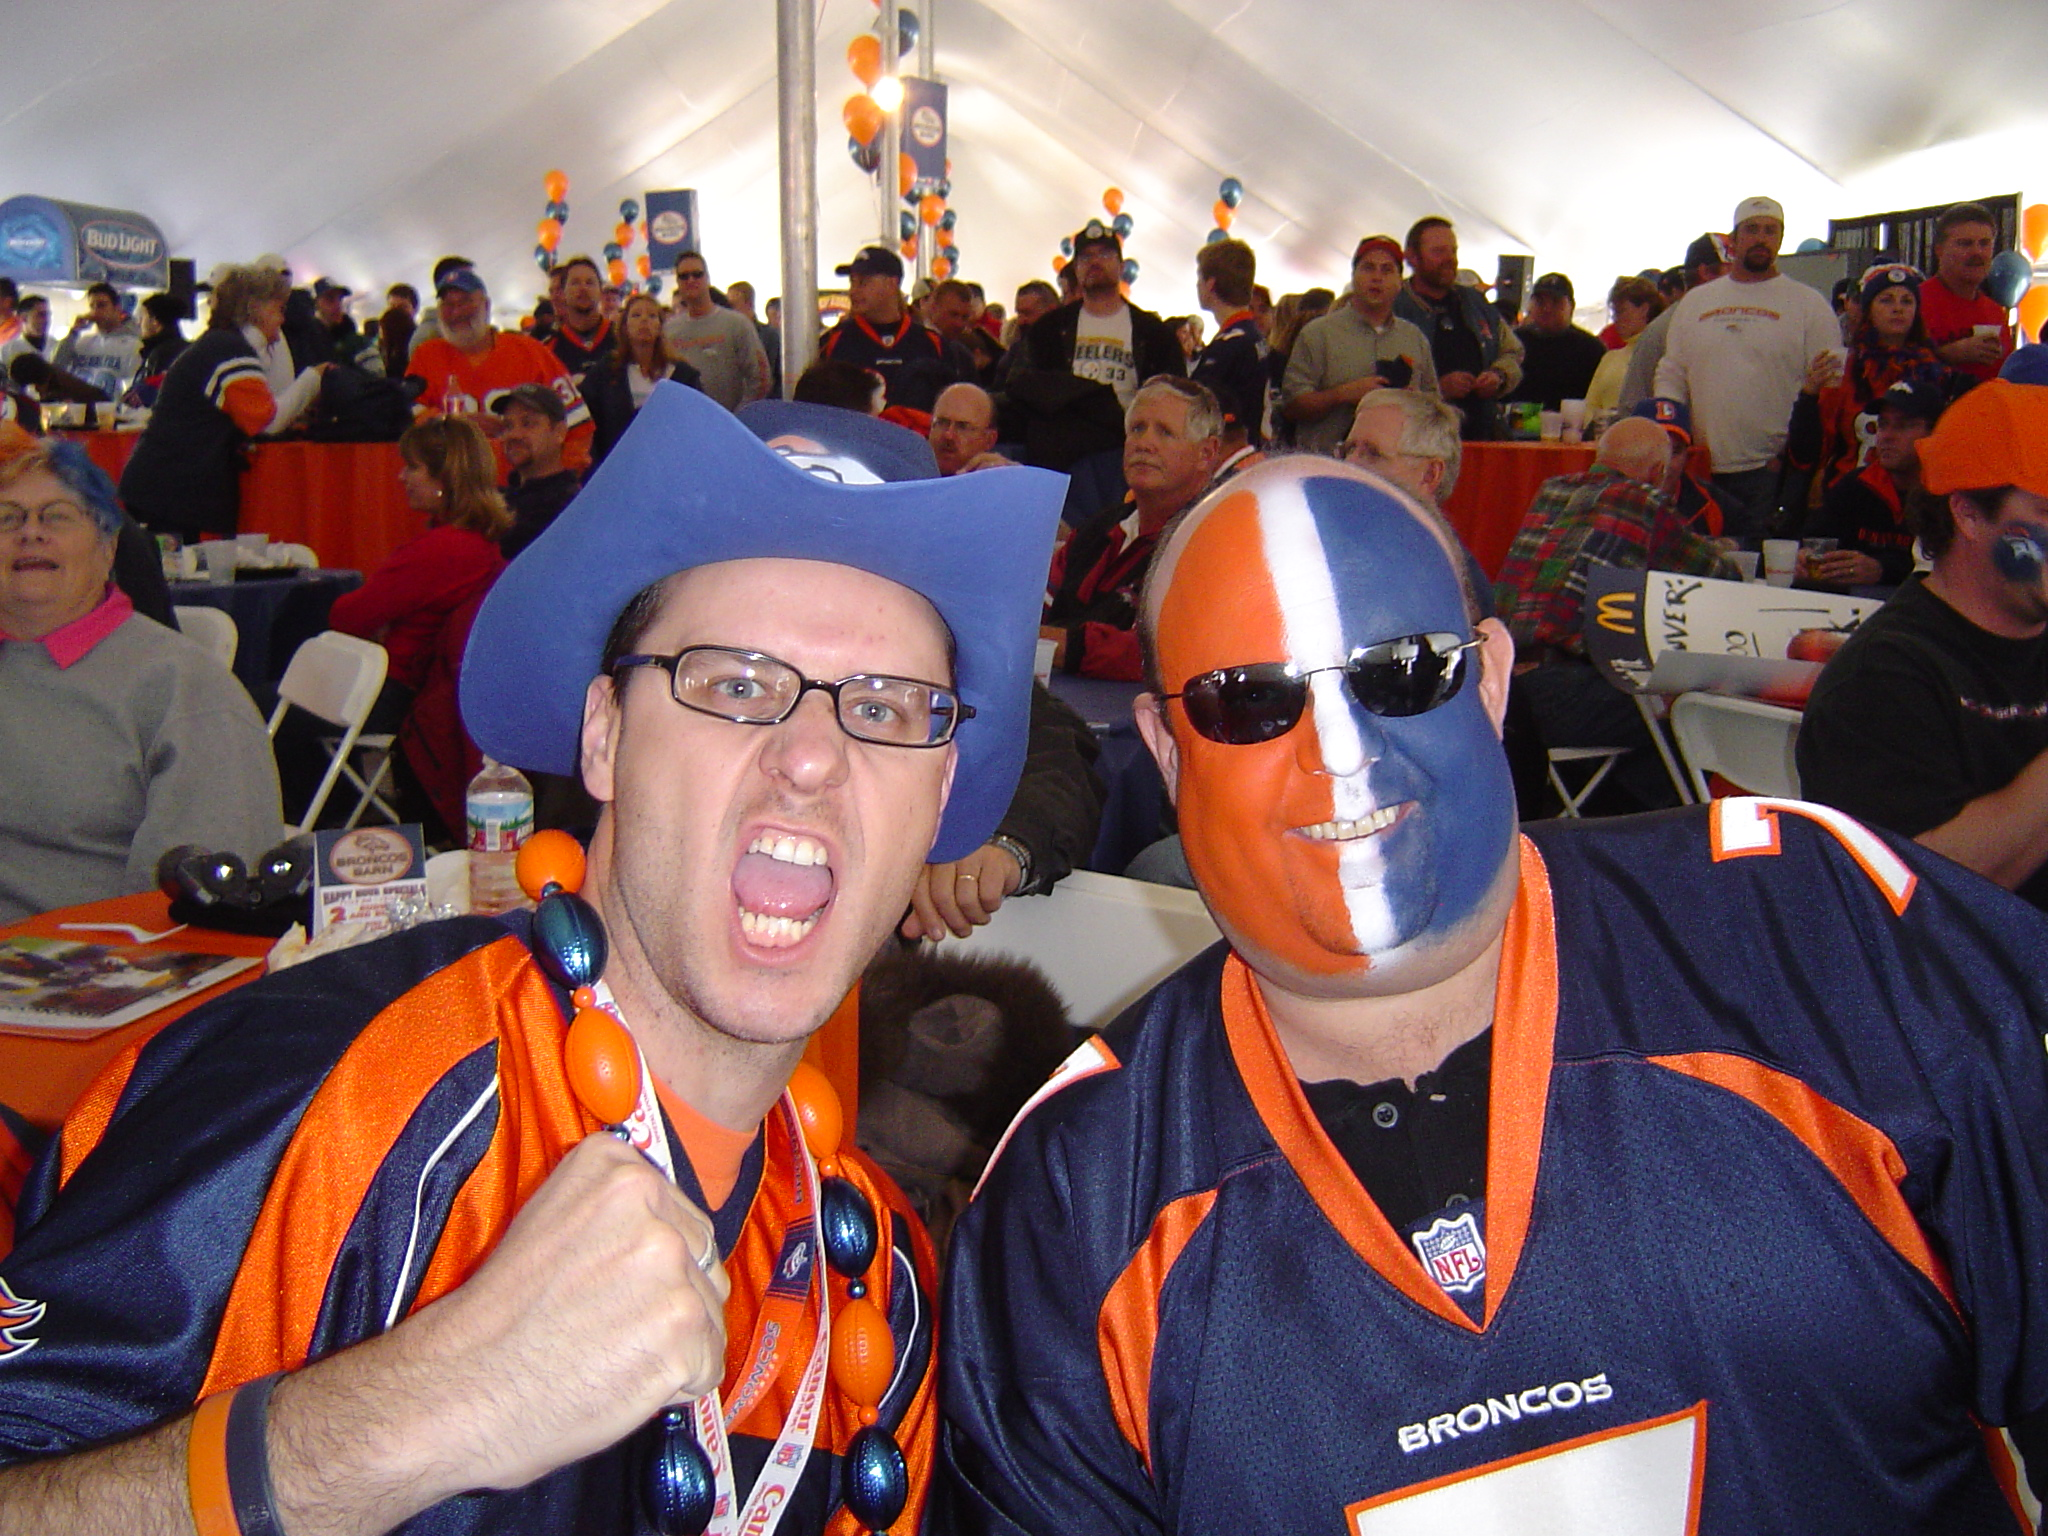 Two men in Denver Broncos gear, one with orange and blue face paint, cheer for the camera.